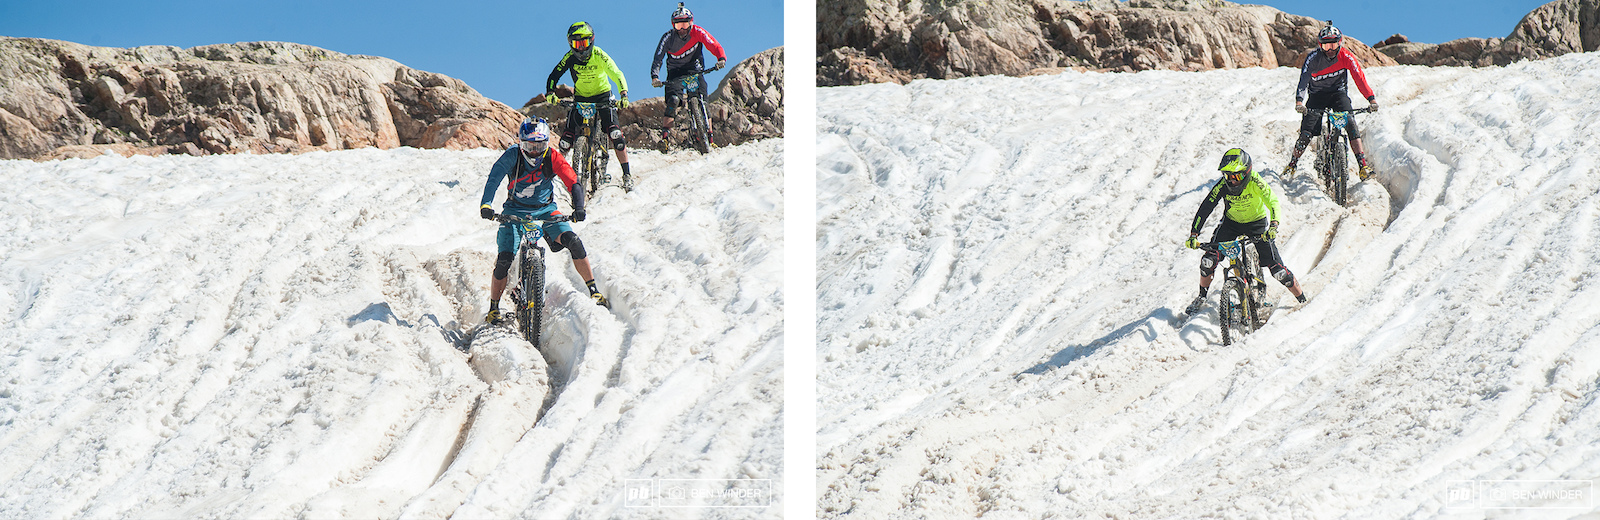 Matti Lehikoinen said that bike skills don t matter once you hit a rut like this one you ve just got to get through it with your legs off. He was fastest here at the top but dropped back to 4th. . Cedric Ravanel Green Commencal kit took the win in this heat.